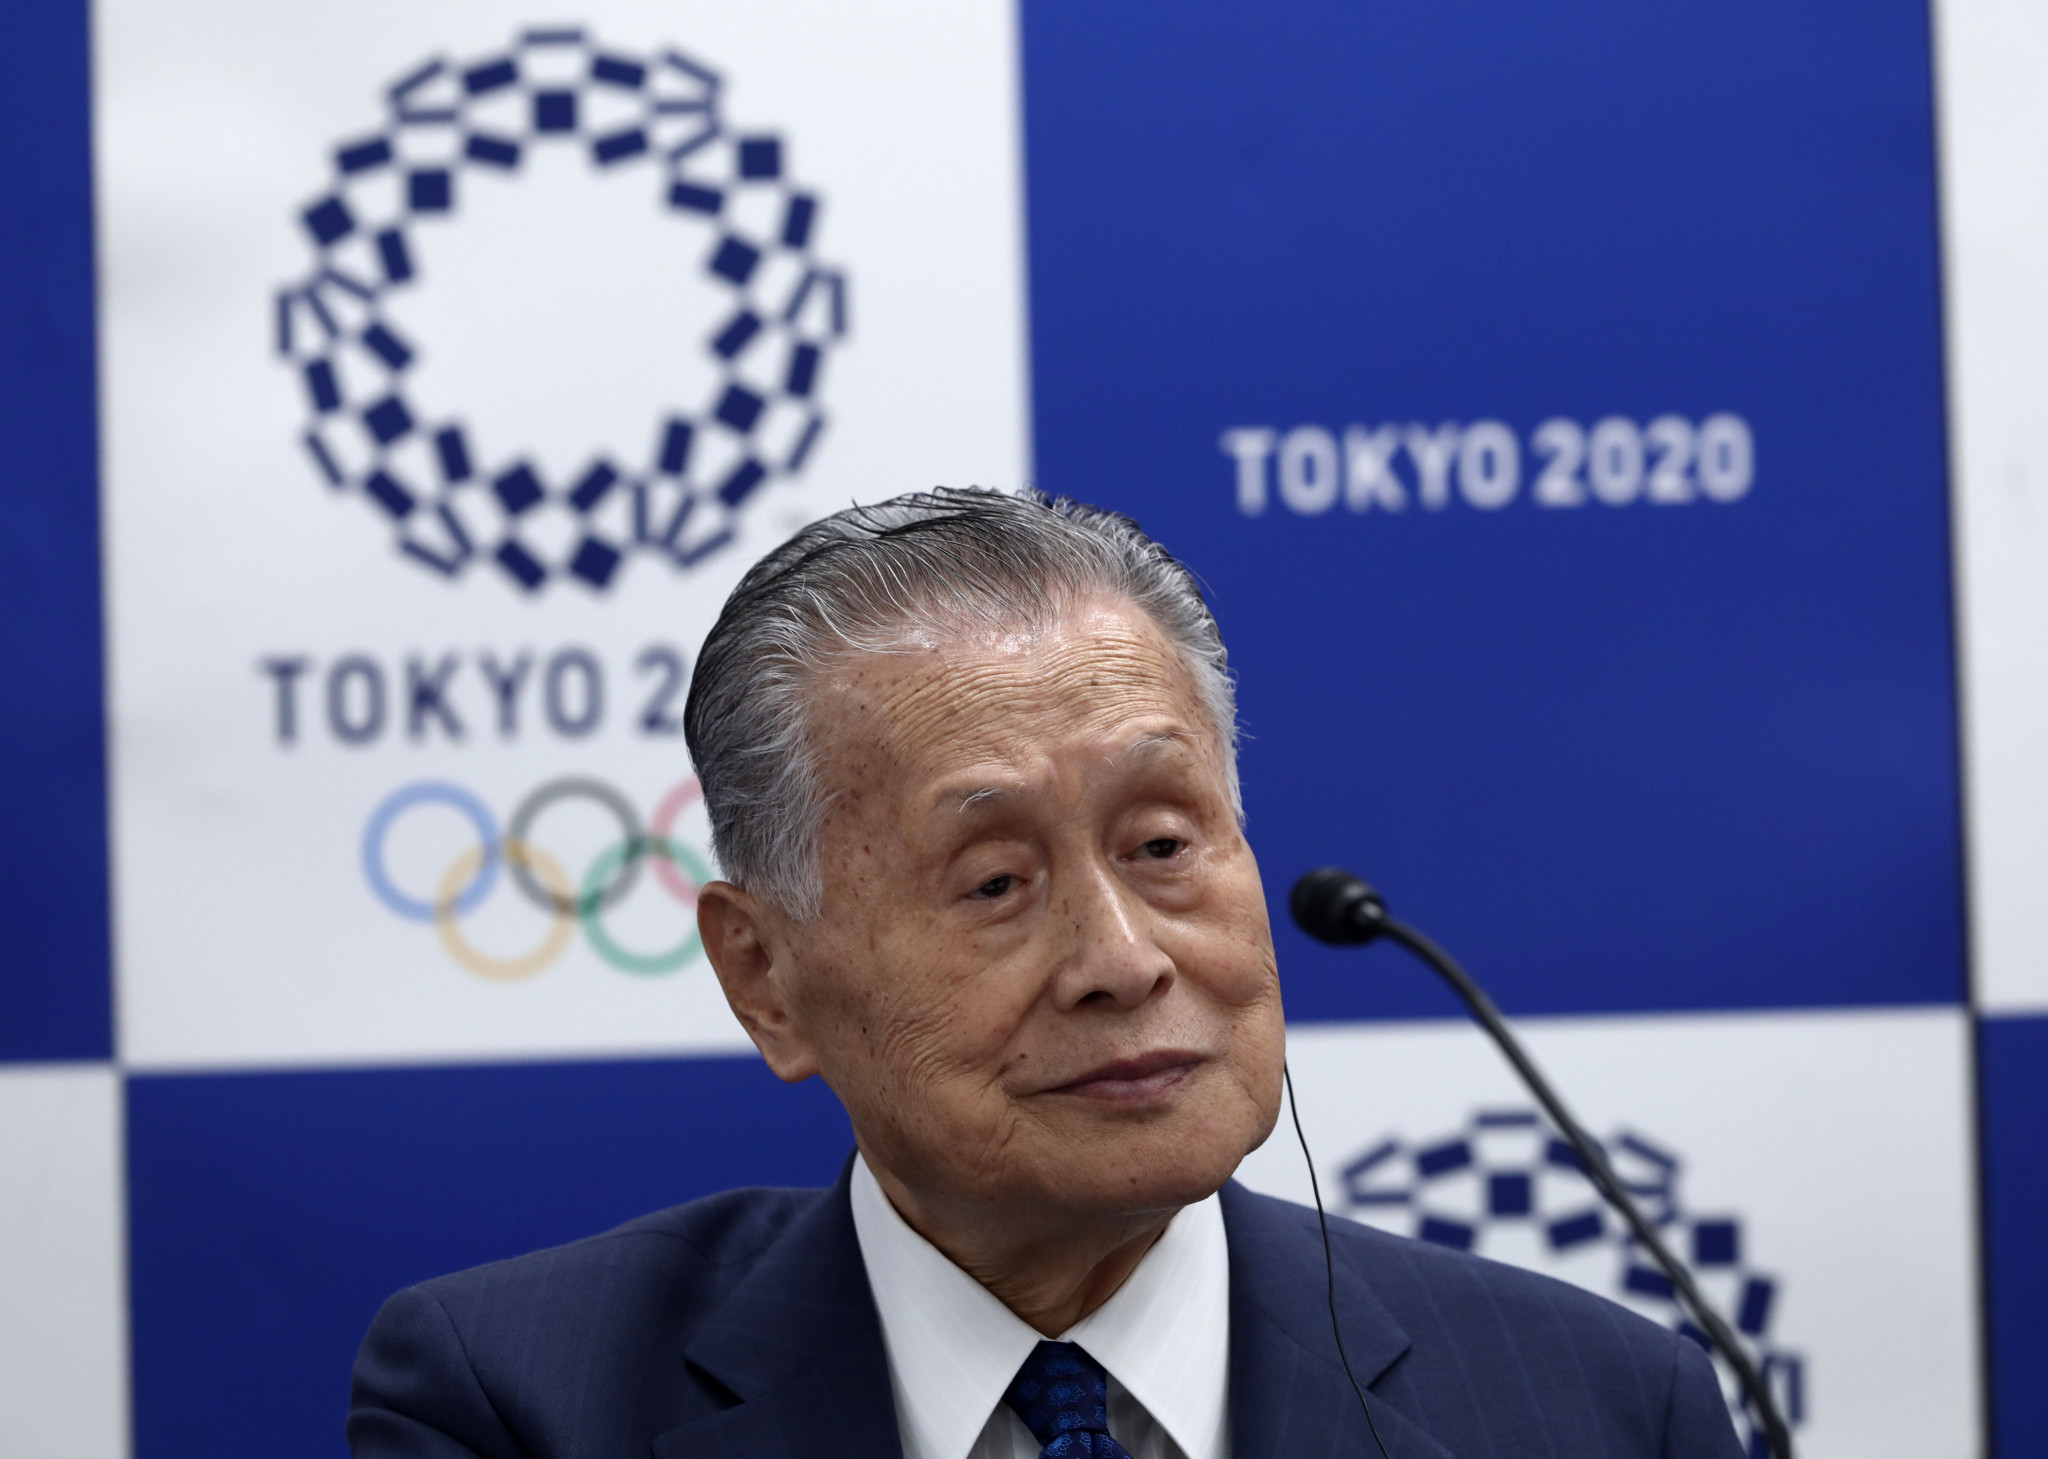 Tokyo 2020 President Yoshirō Mori says the Organising Committee is confident Morisawa will provide valuable support through the design of unique fonts for the Olympic and Paralympic Games ©Getty Images